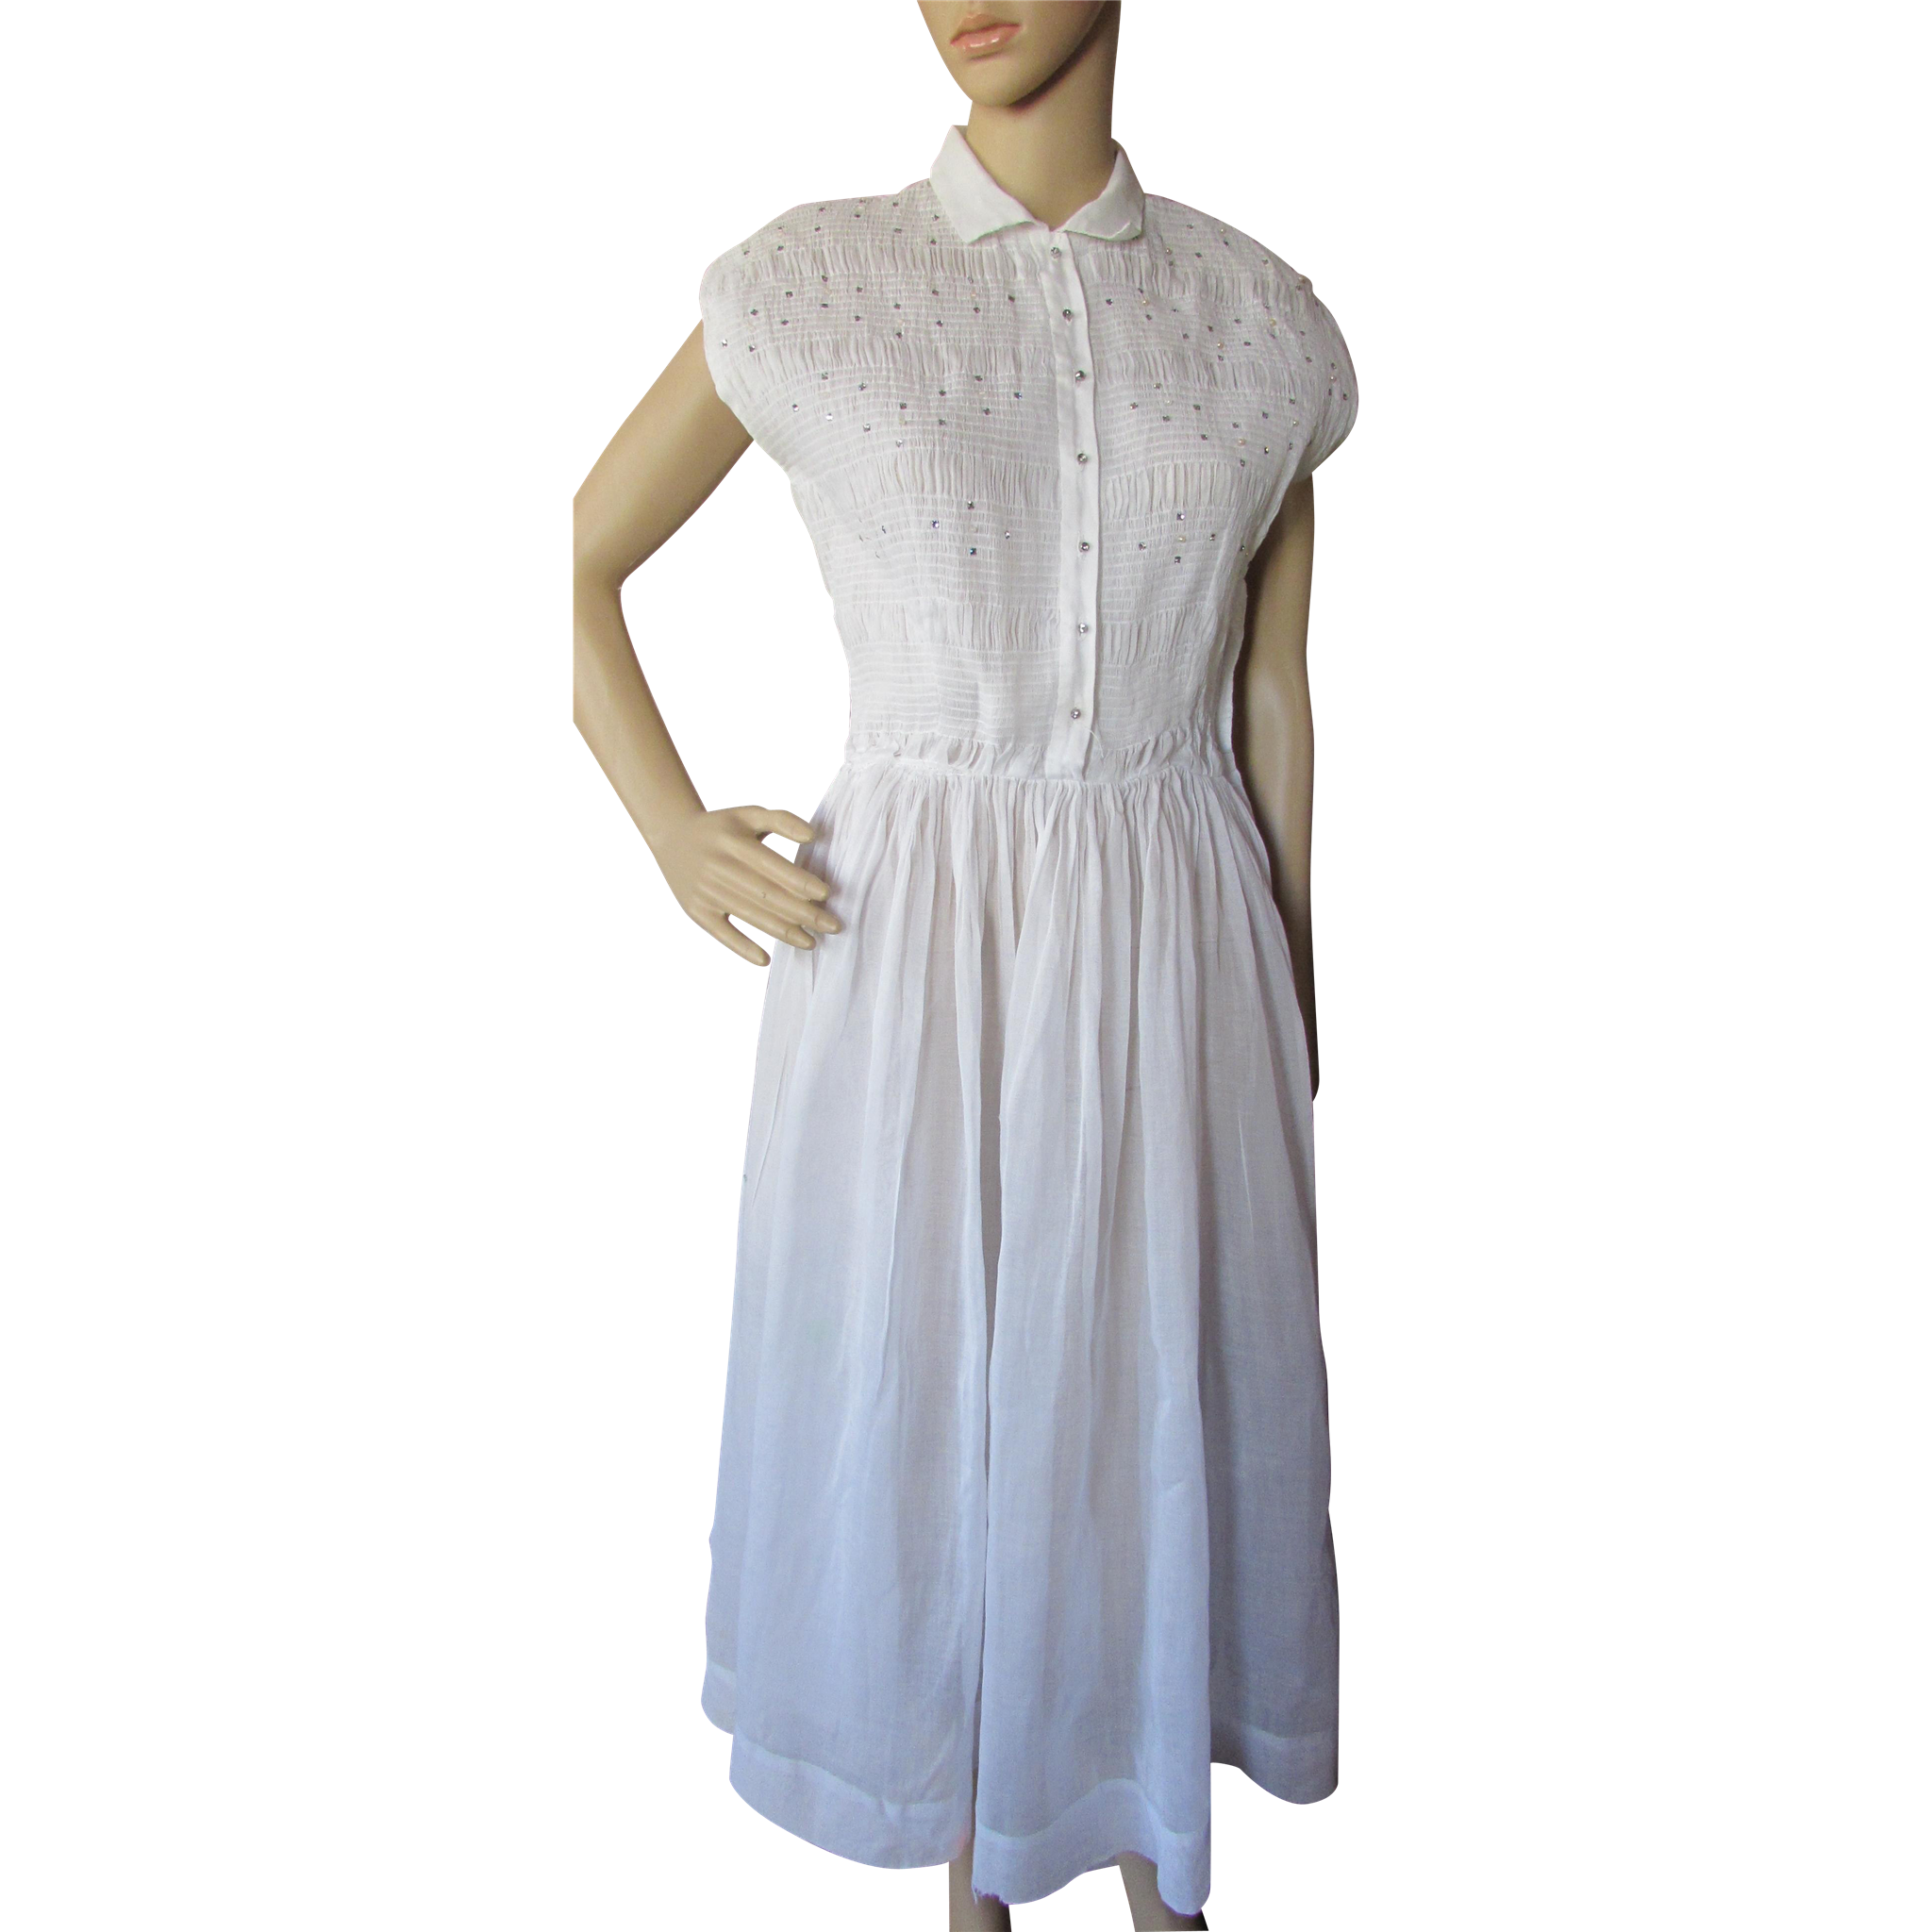 Mid Century Summer Dress in White Organdy with Smocked Bodice Rhinestones Faux Pearl Trim Junior House